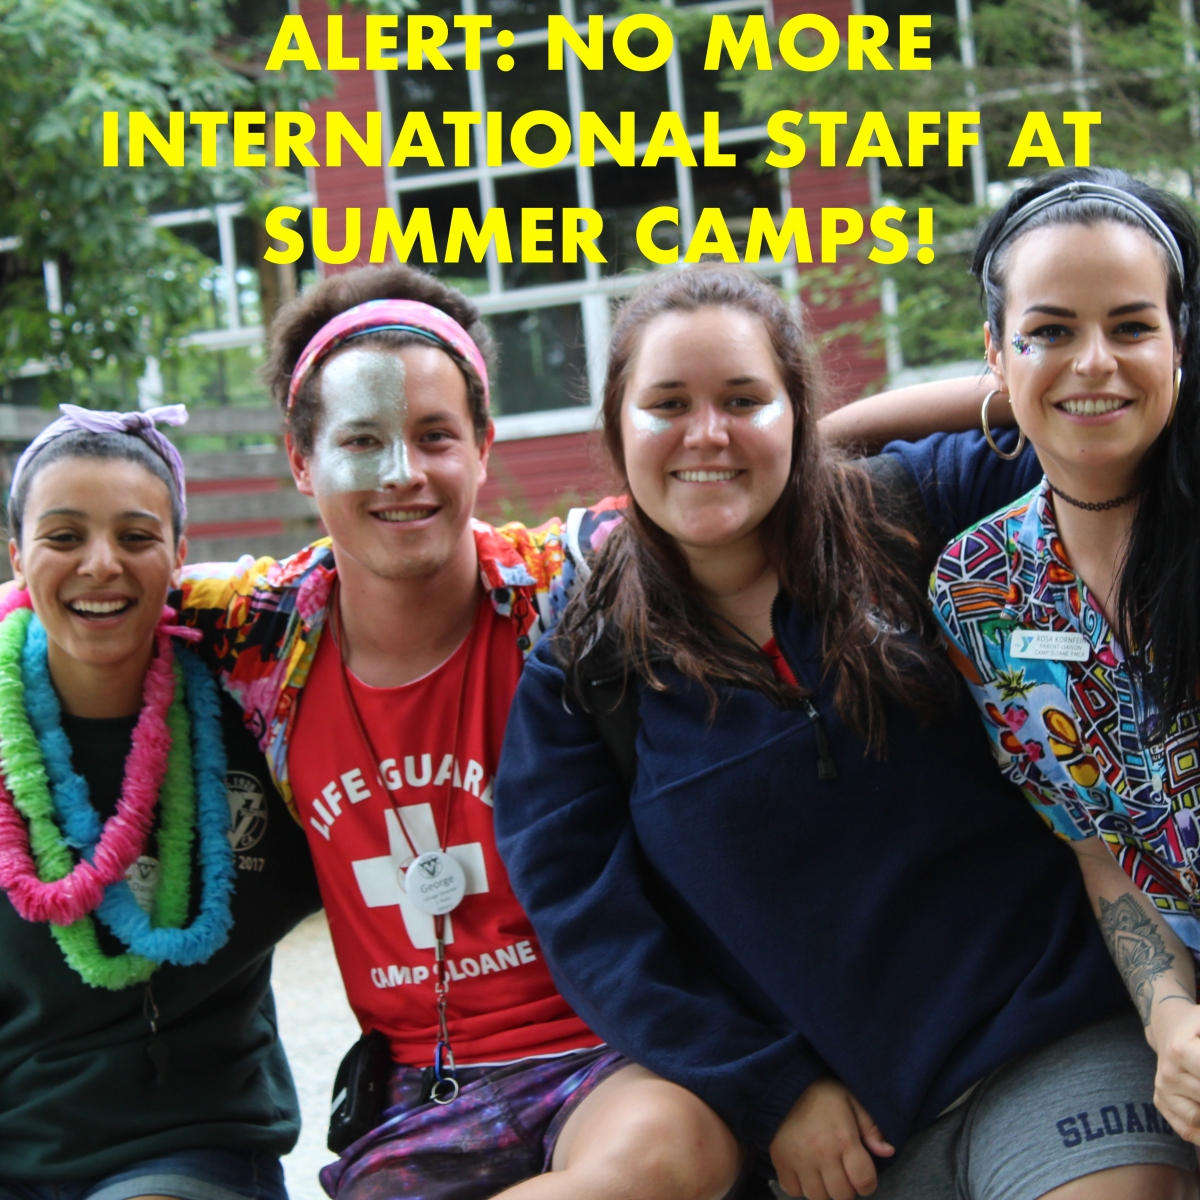 ALERT: NO MORE INTERNATIONAL STAFF AT SUMMER CAMPS!